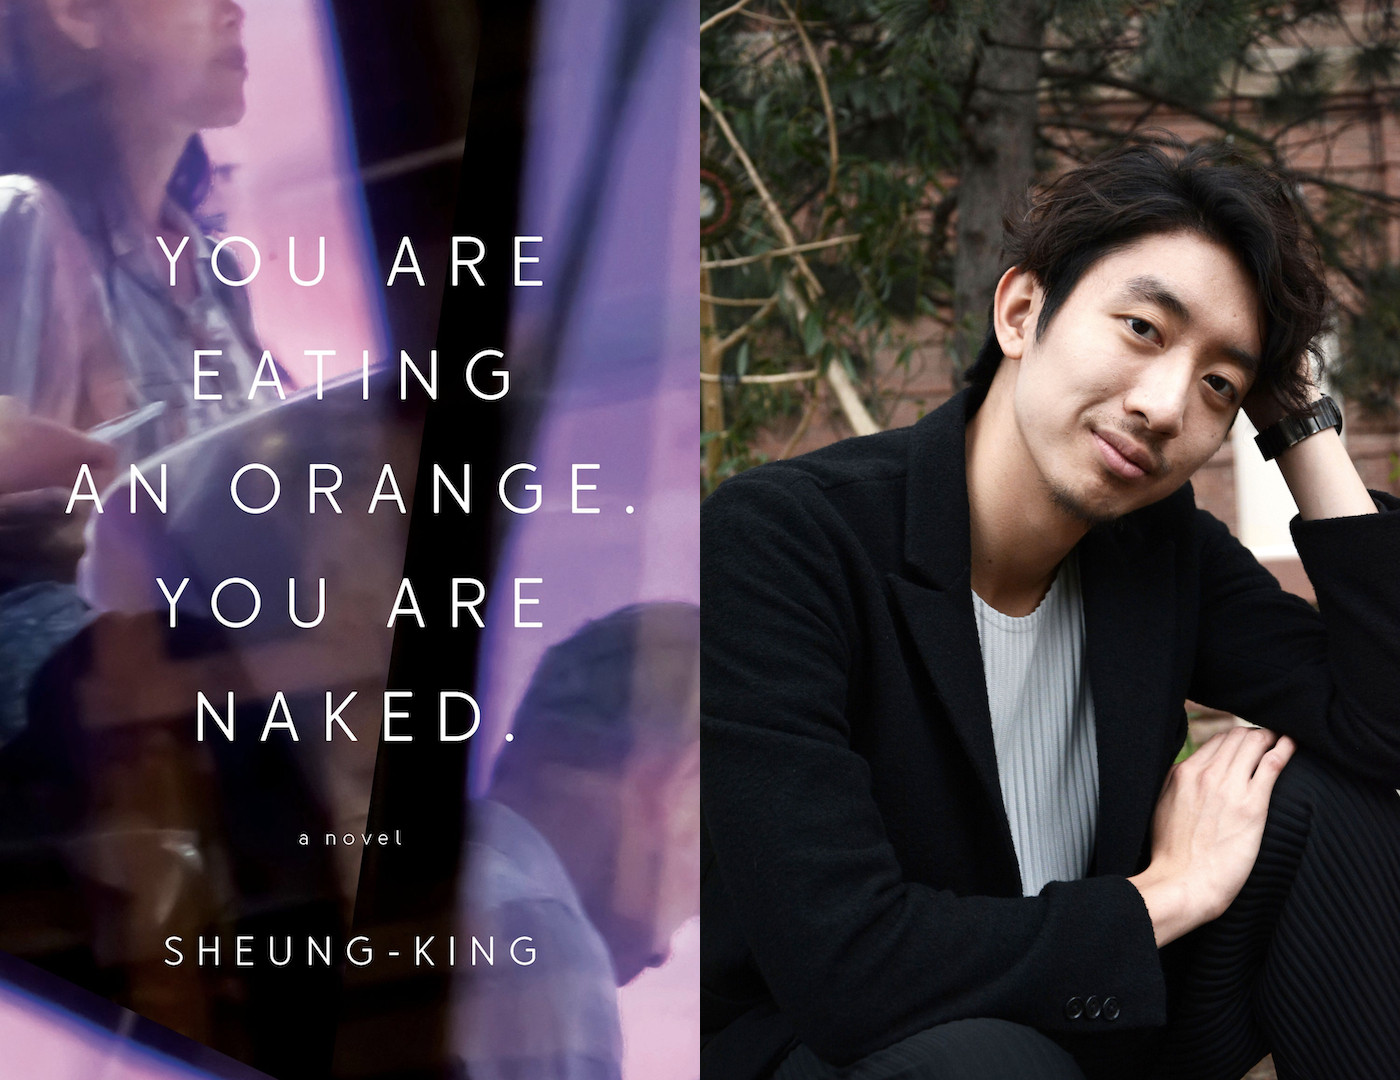 A photograph of Sheung-King and his forthcoming novel, You Are Eating an Orange. You Are Naked.